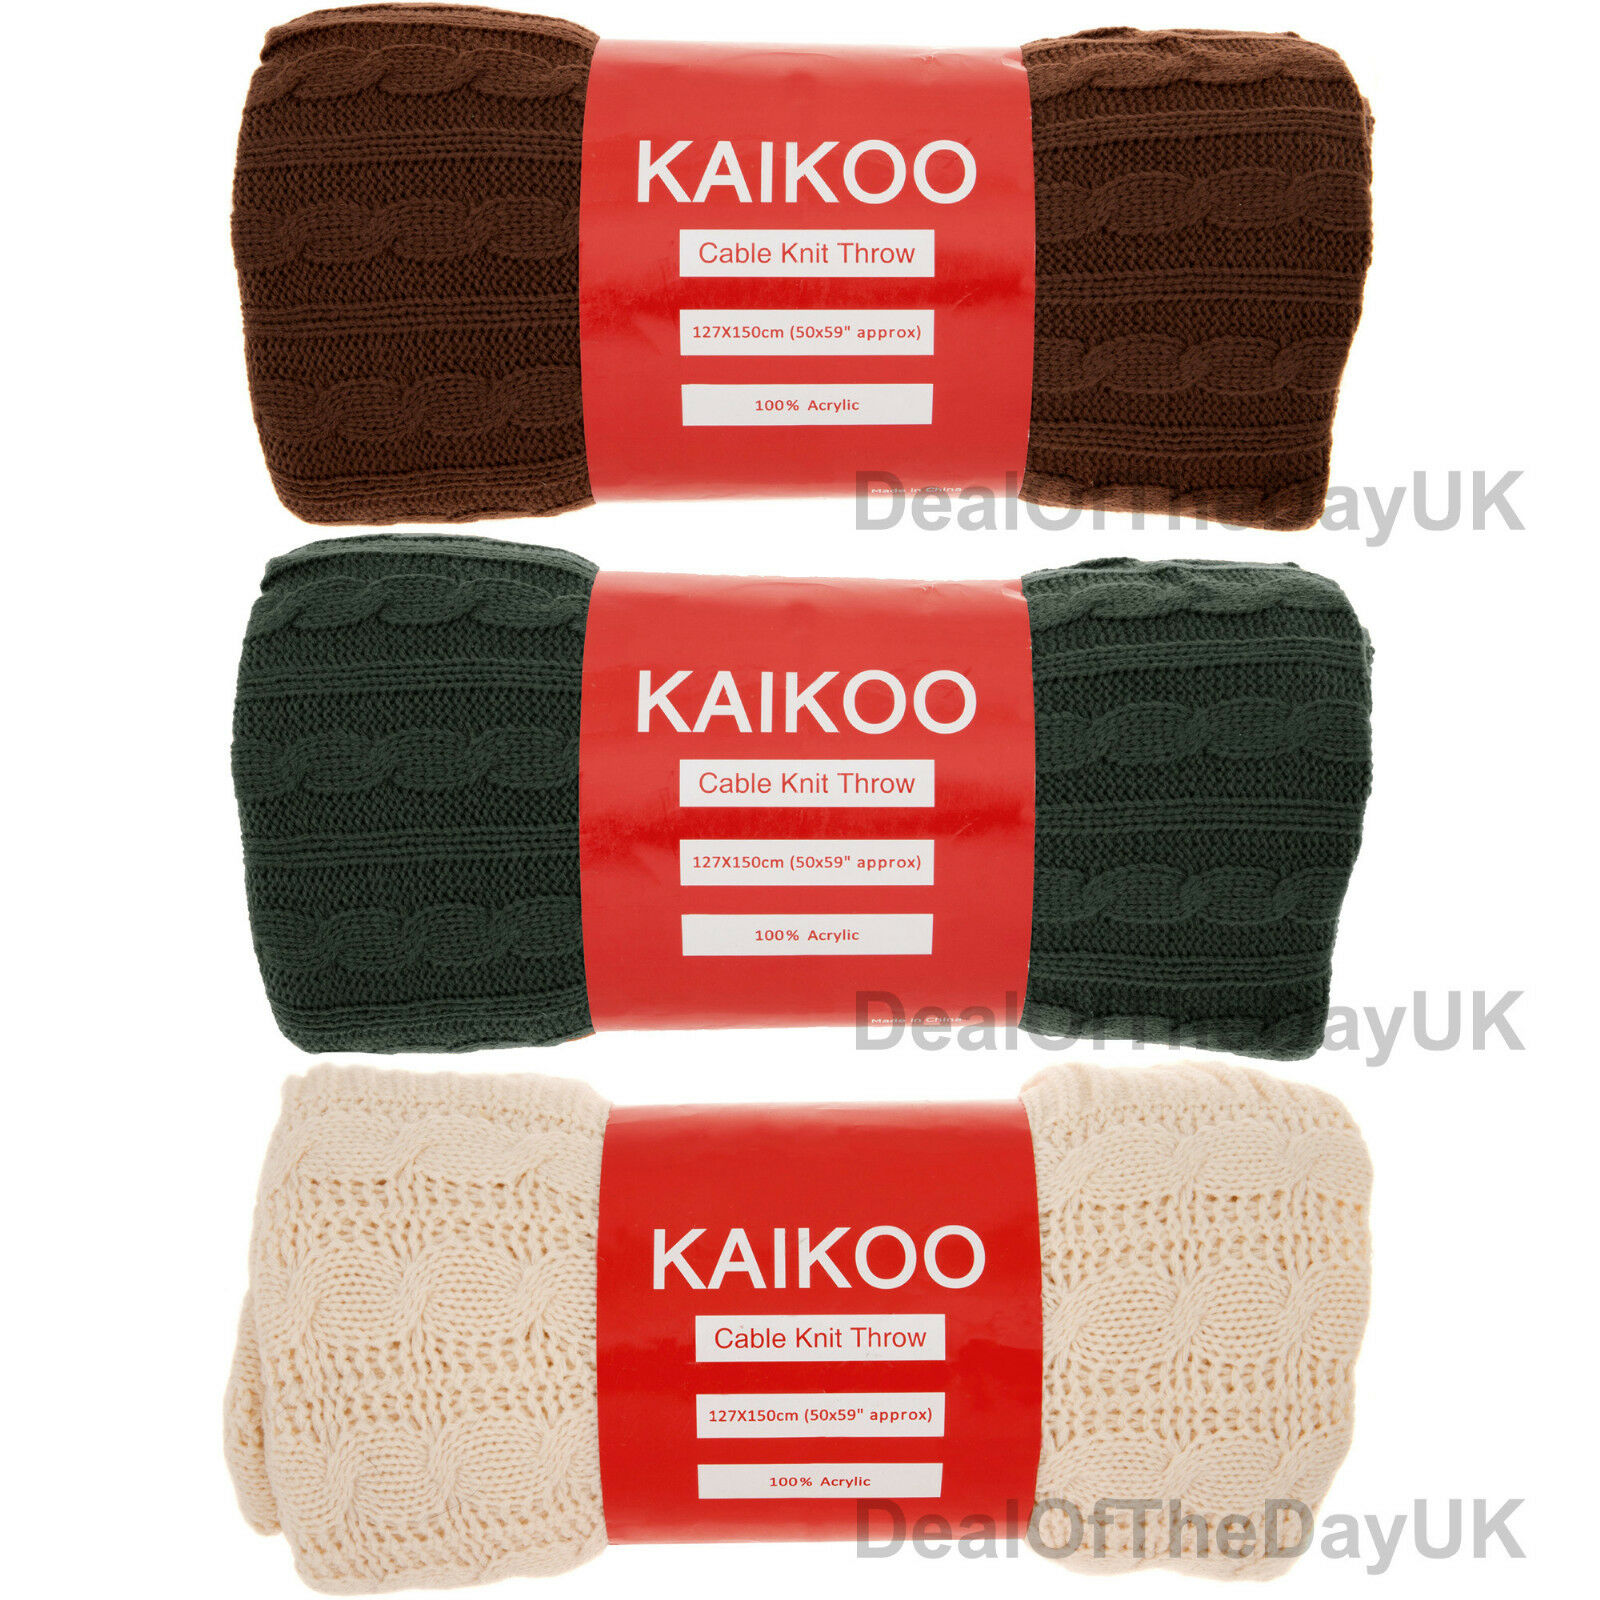 cream sofa throws uk charity collection nottingham kaikoo cable knit blanket knitted throw single double